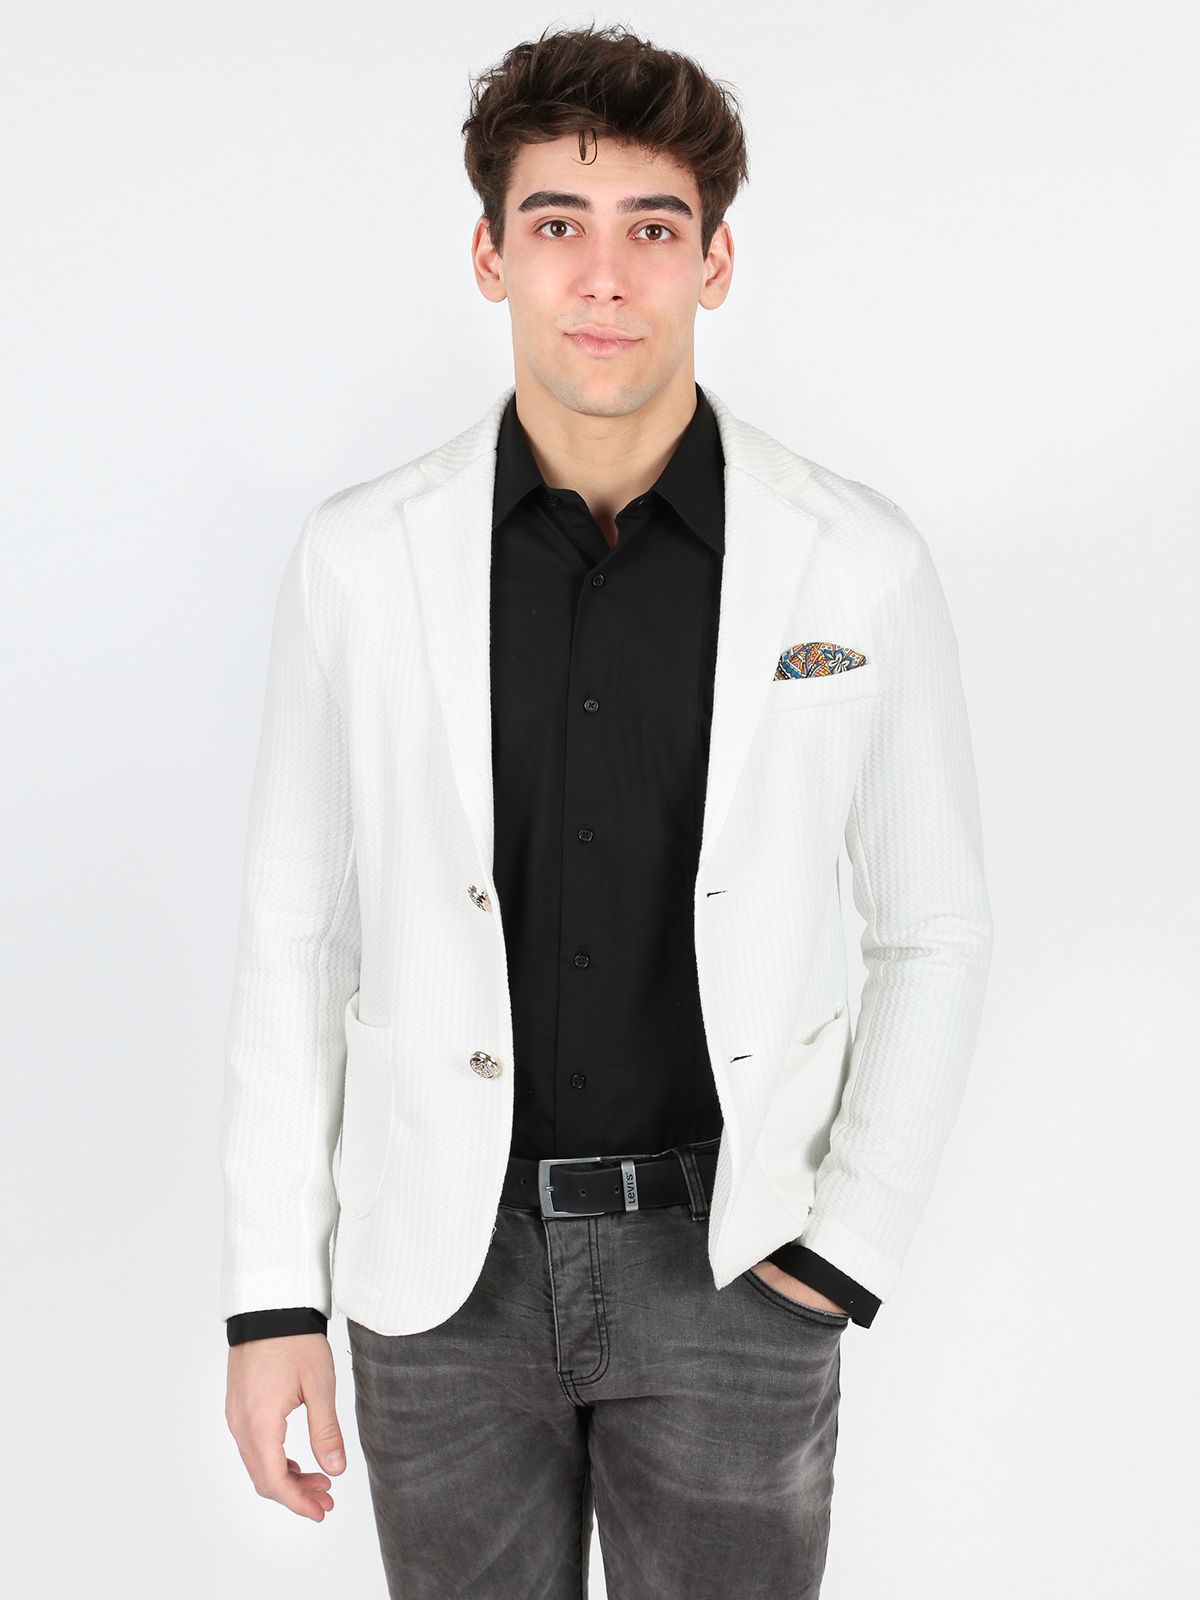 White Blazer Men